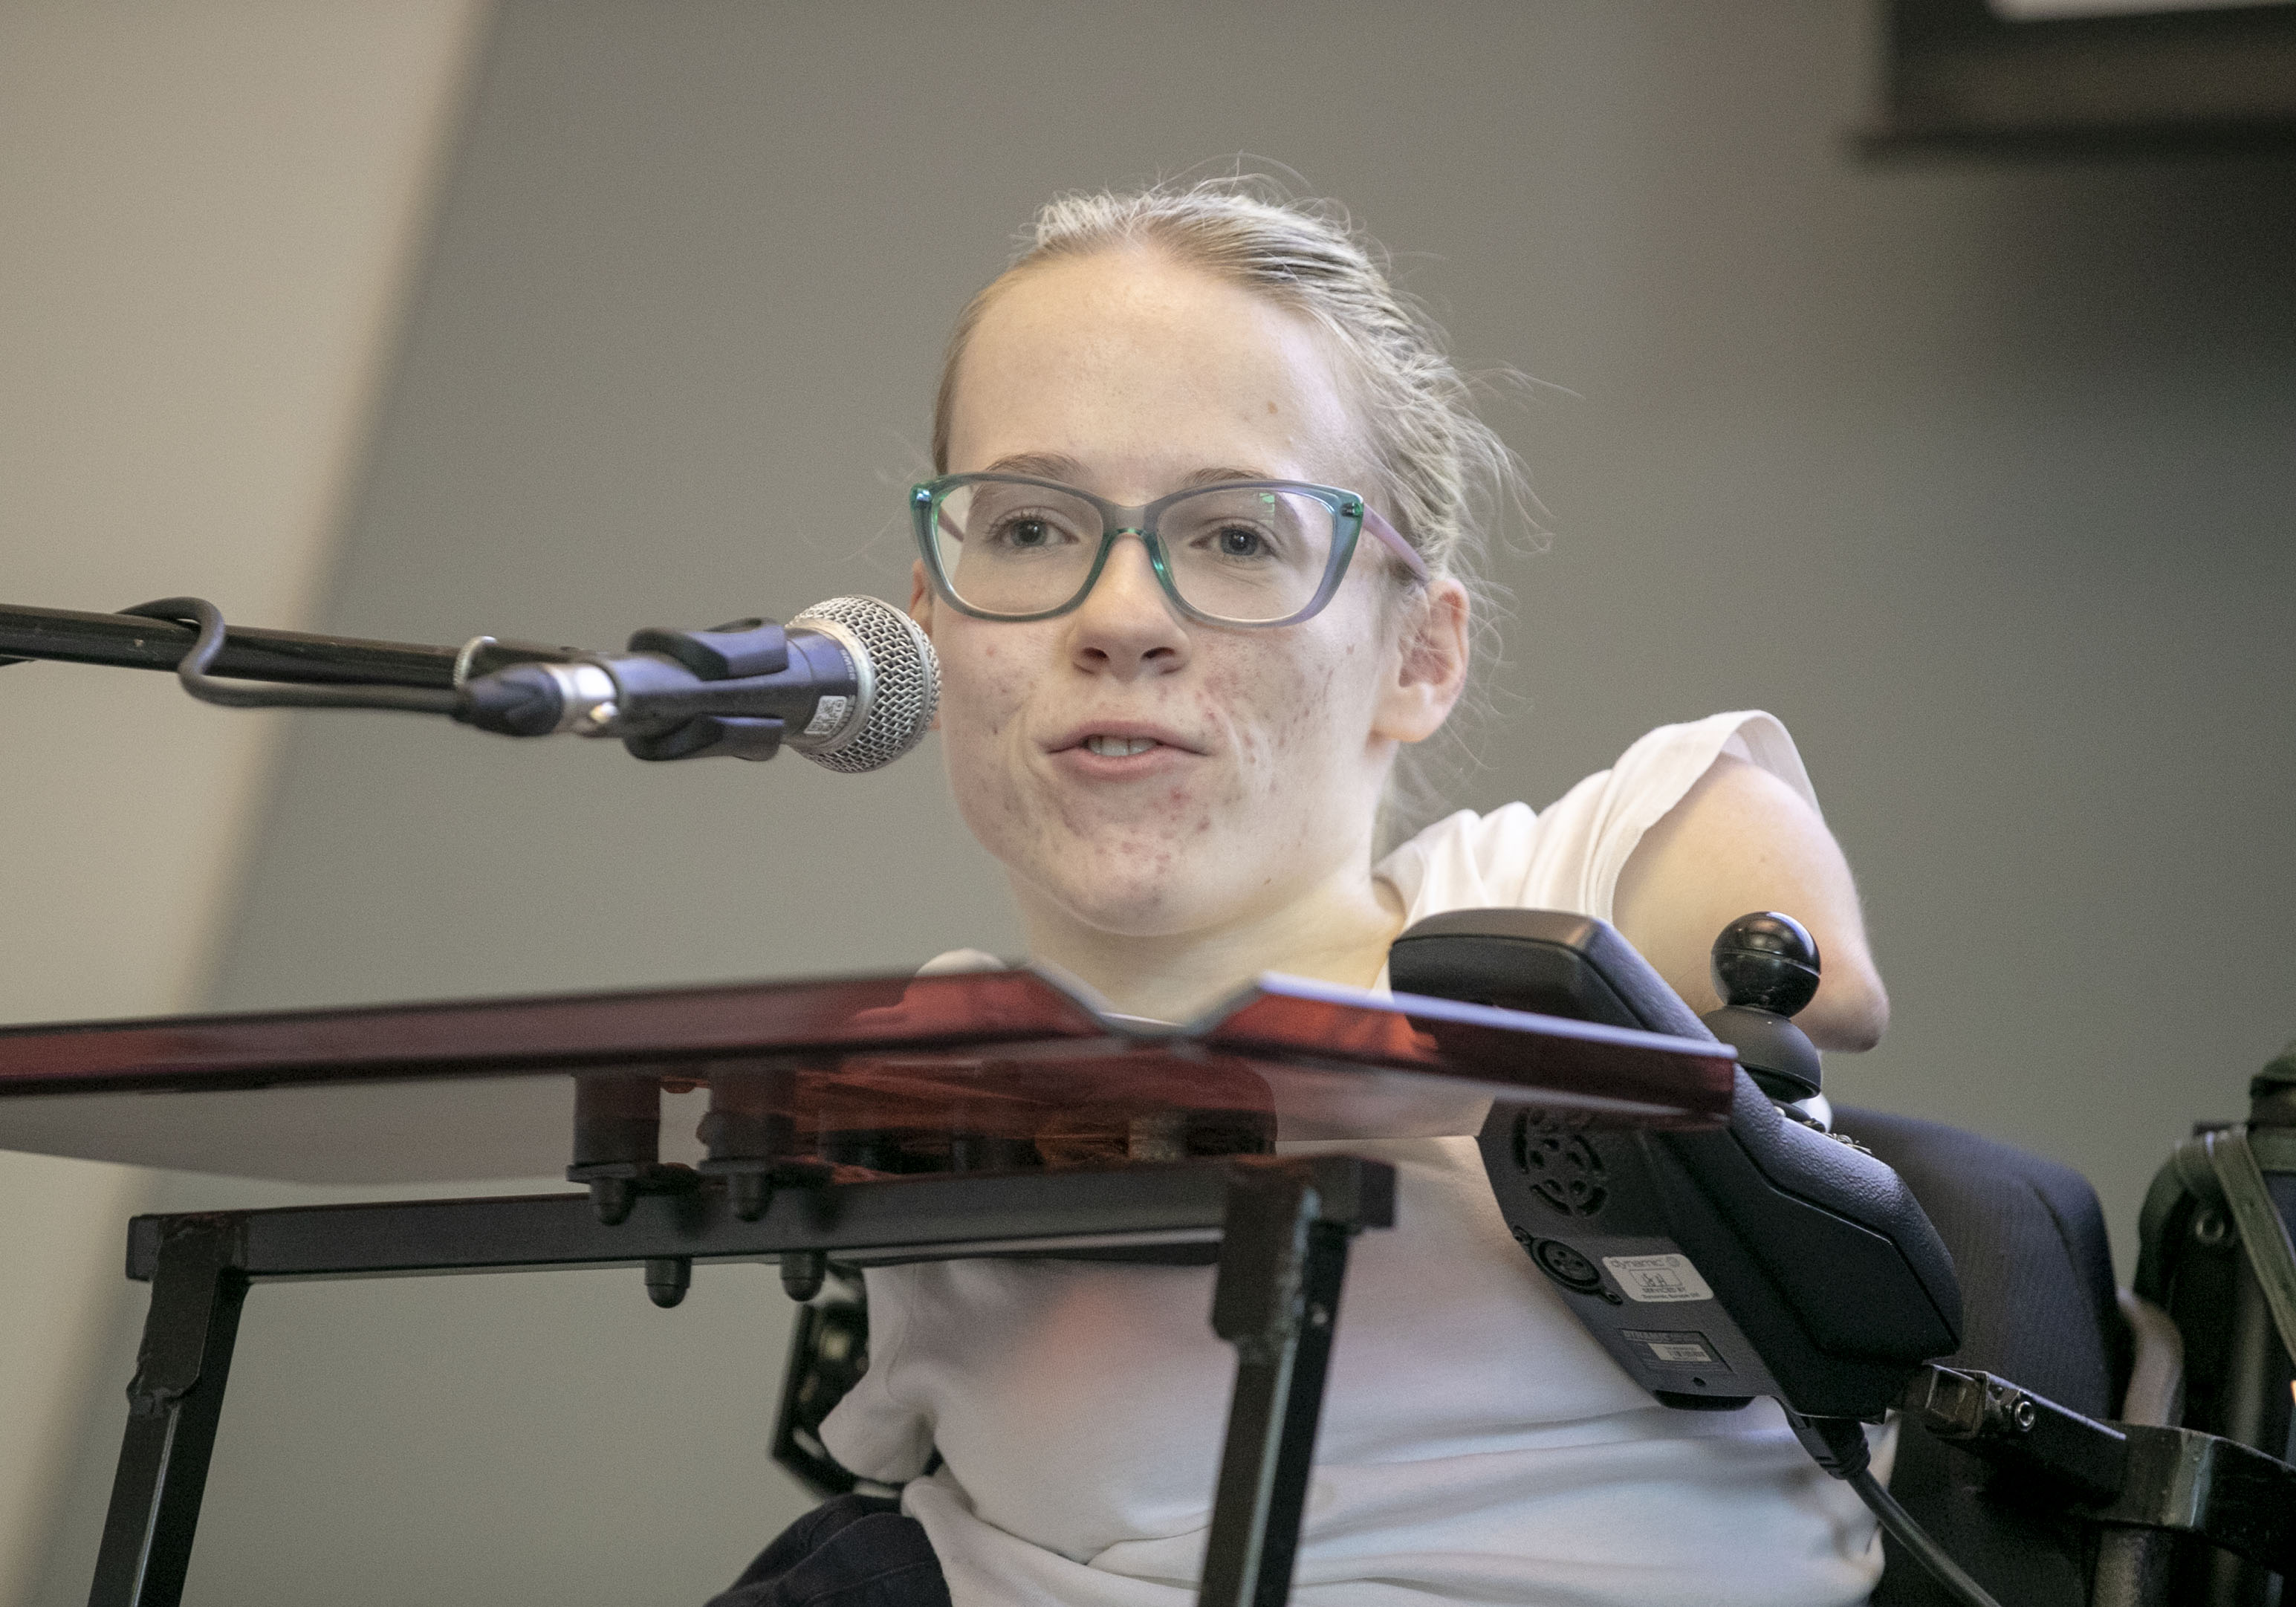 Disability rights campaigner talks about empowerment at the NAS launch event